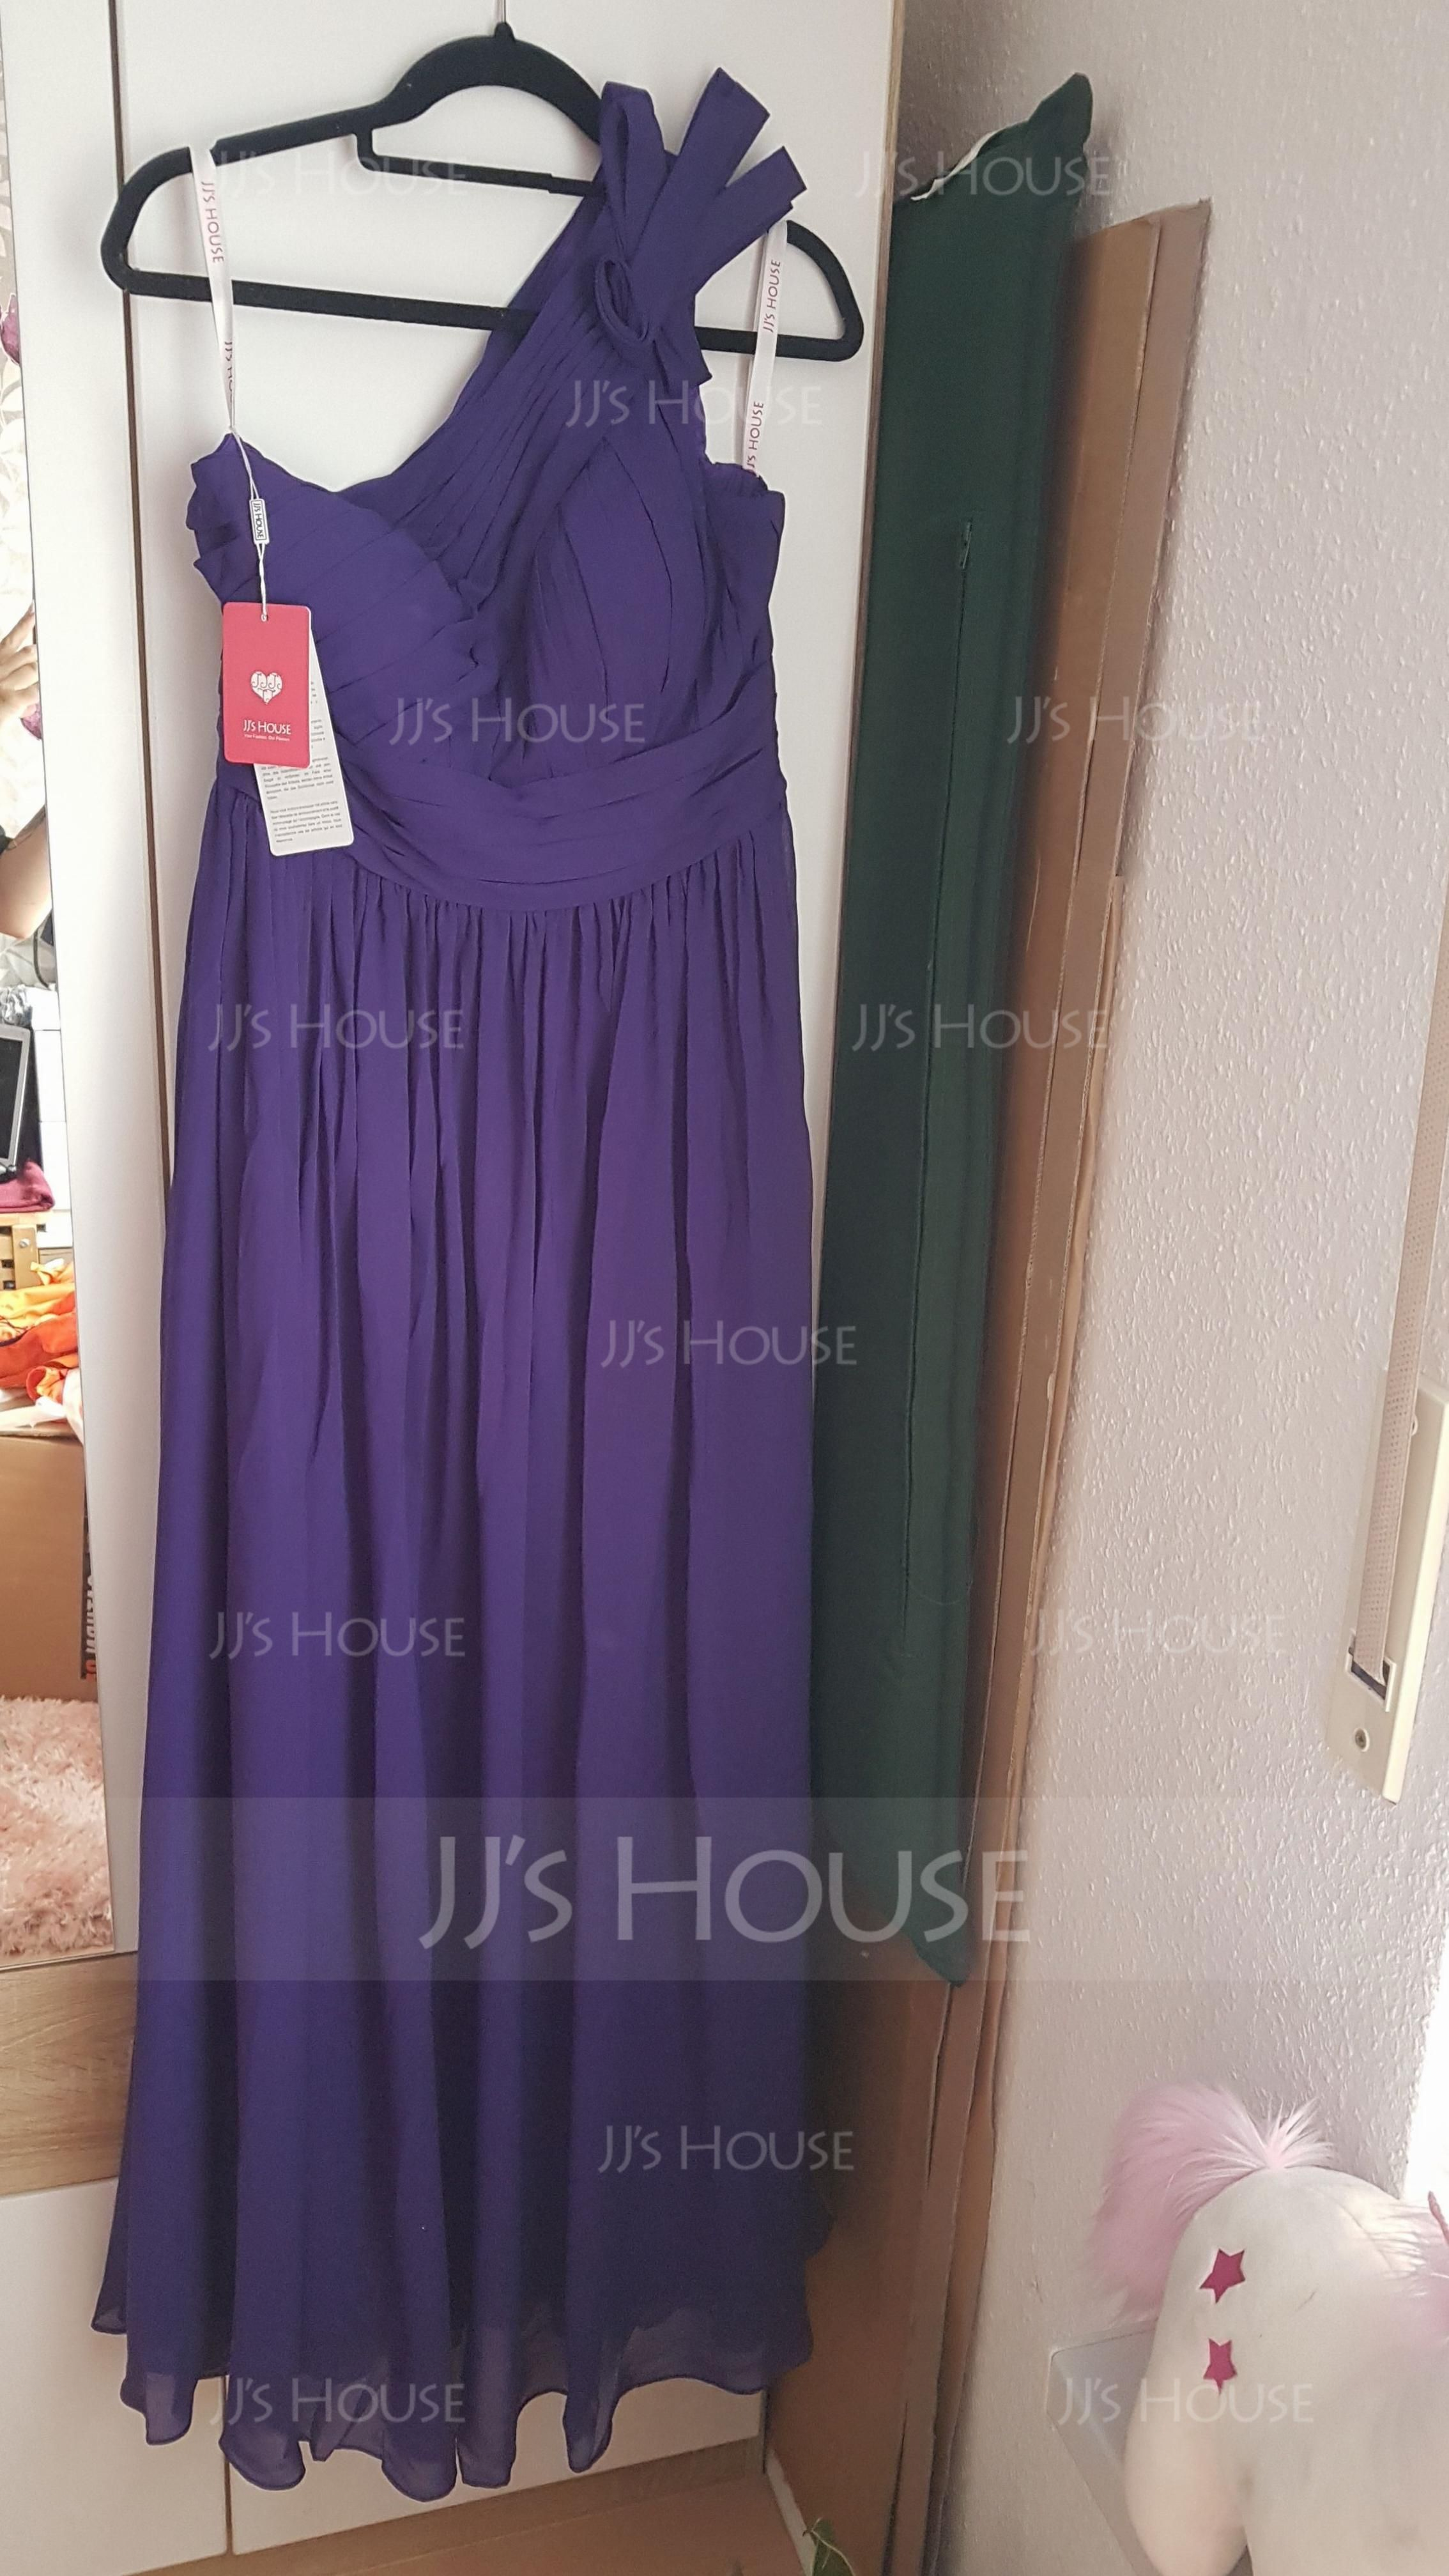 A-Line/Princess One-Shoulder Floor-Length Chiffon Bridesmaid Dress With Ruffle Flower(s) (007116634)